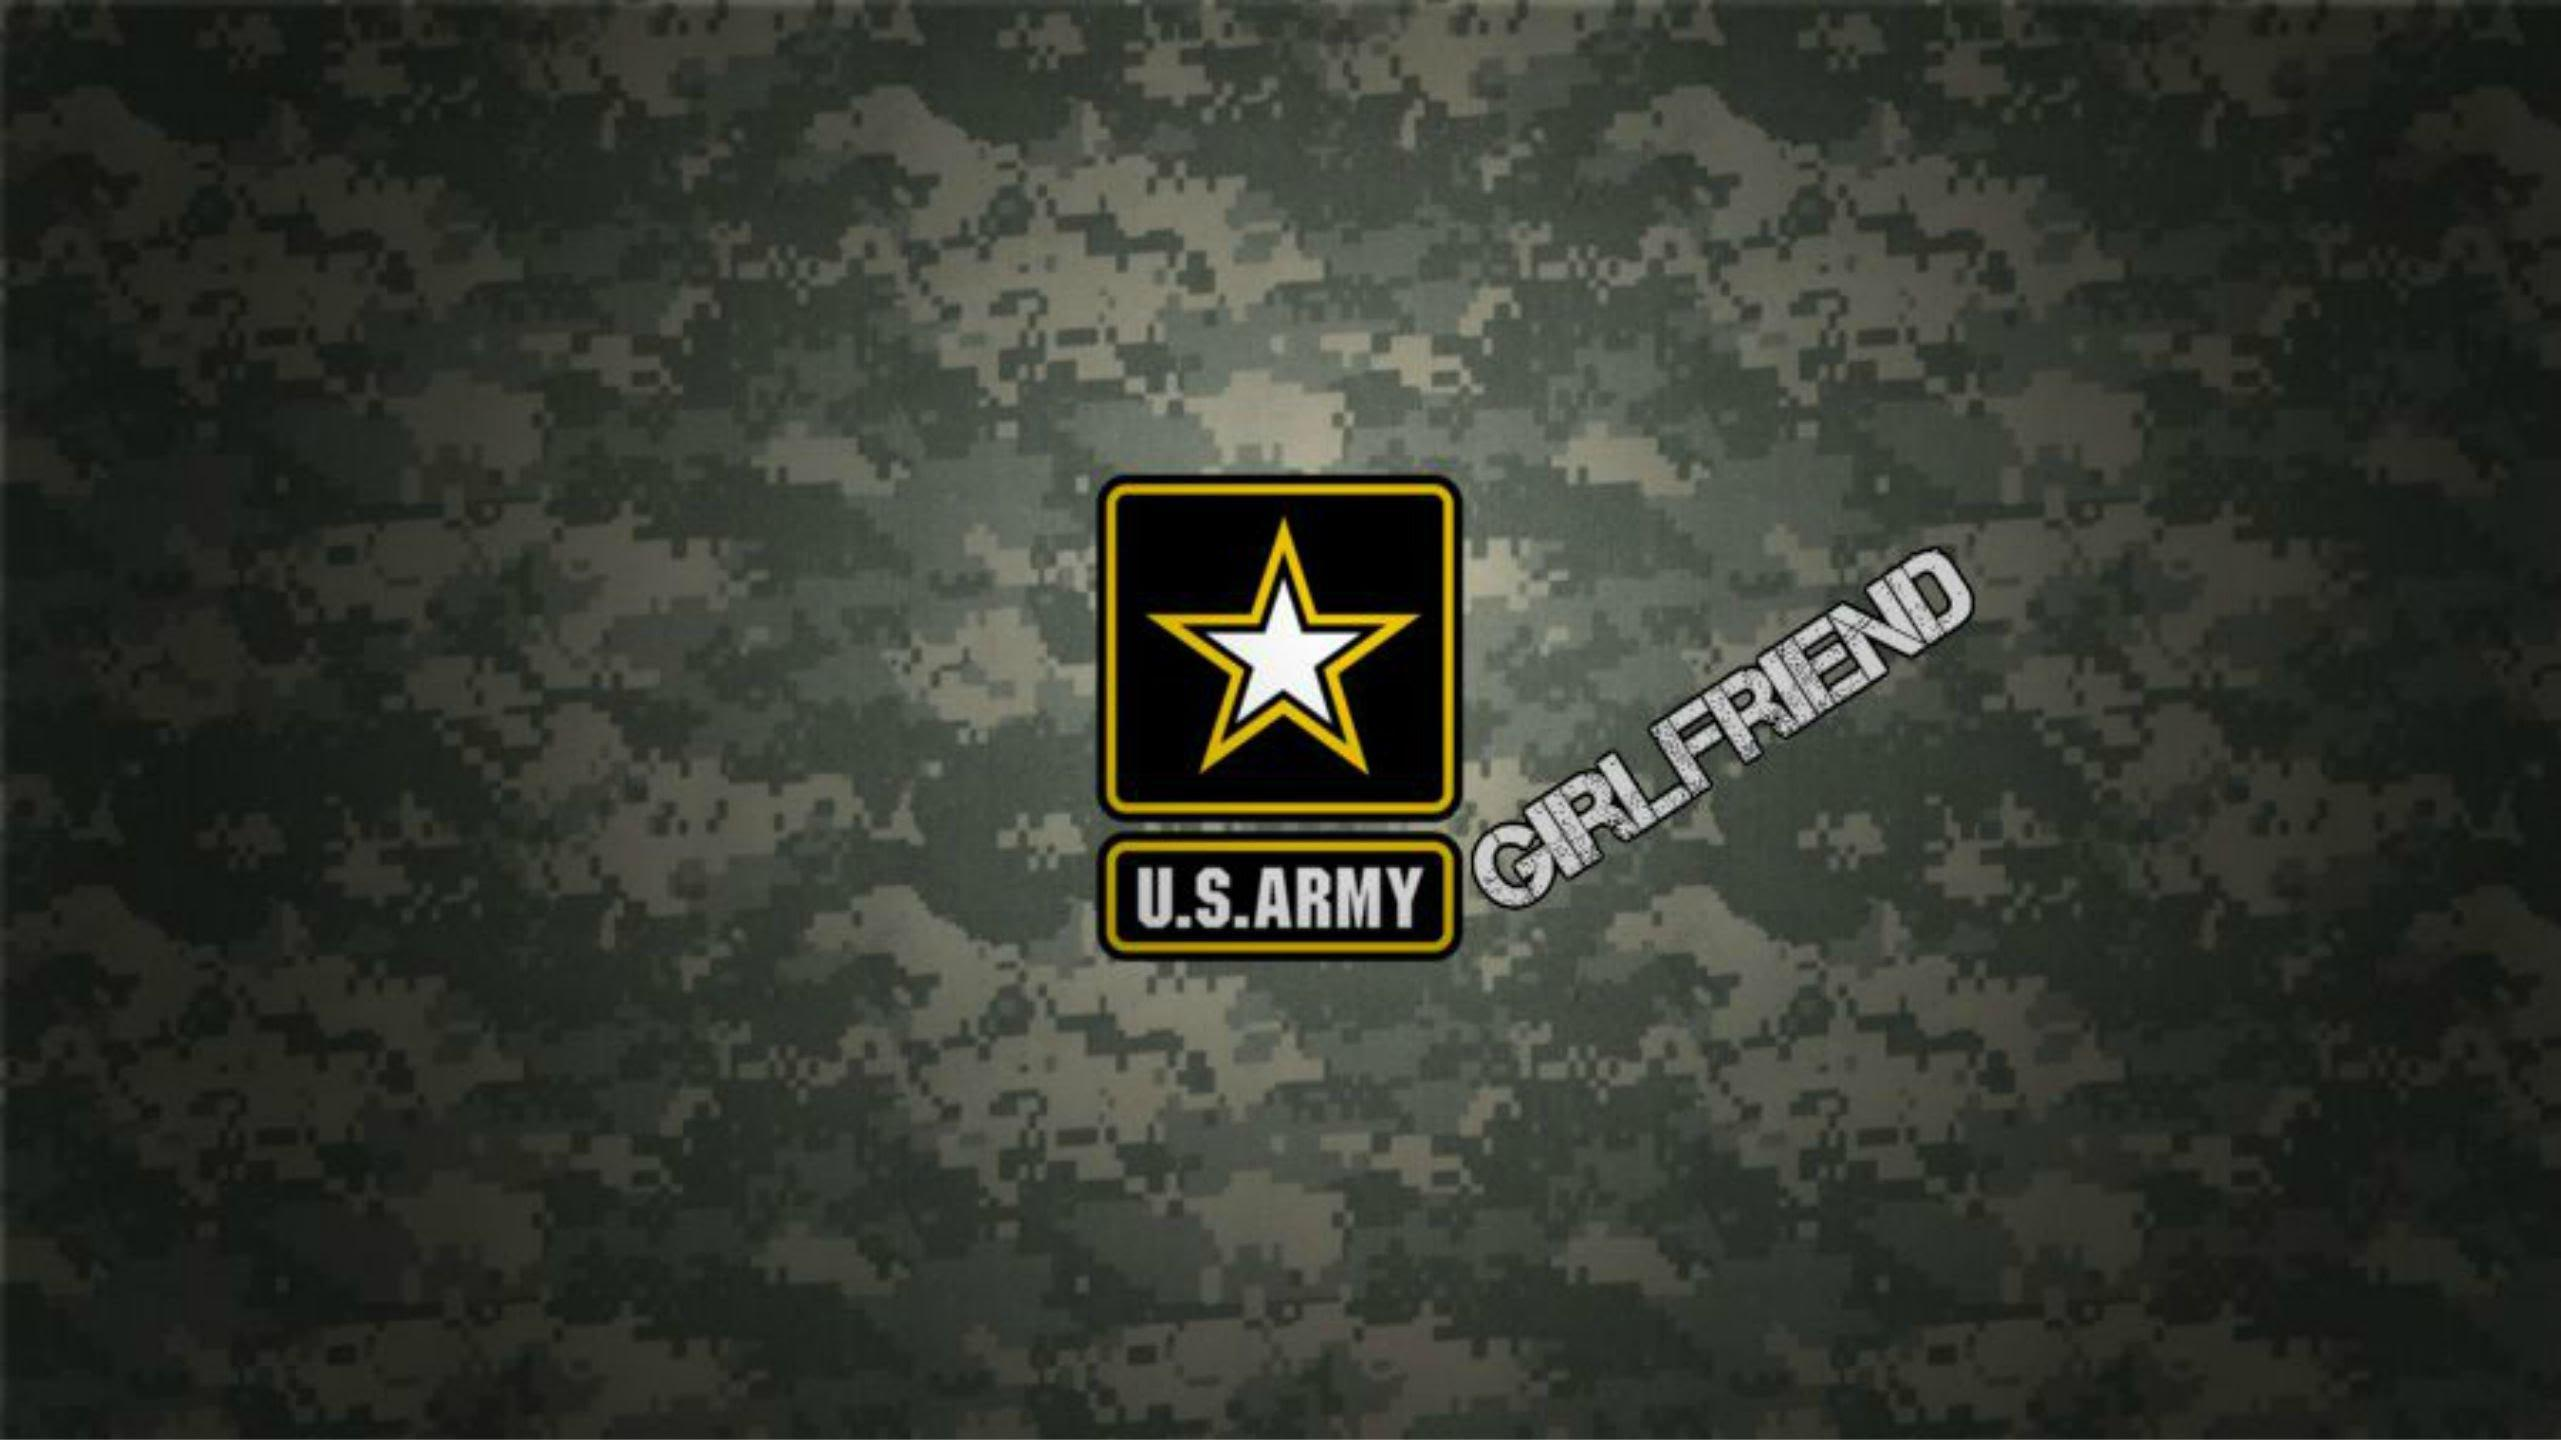 Us army logo wallpapers wallpaper cave - Army wallpaper hd 1080p ...